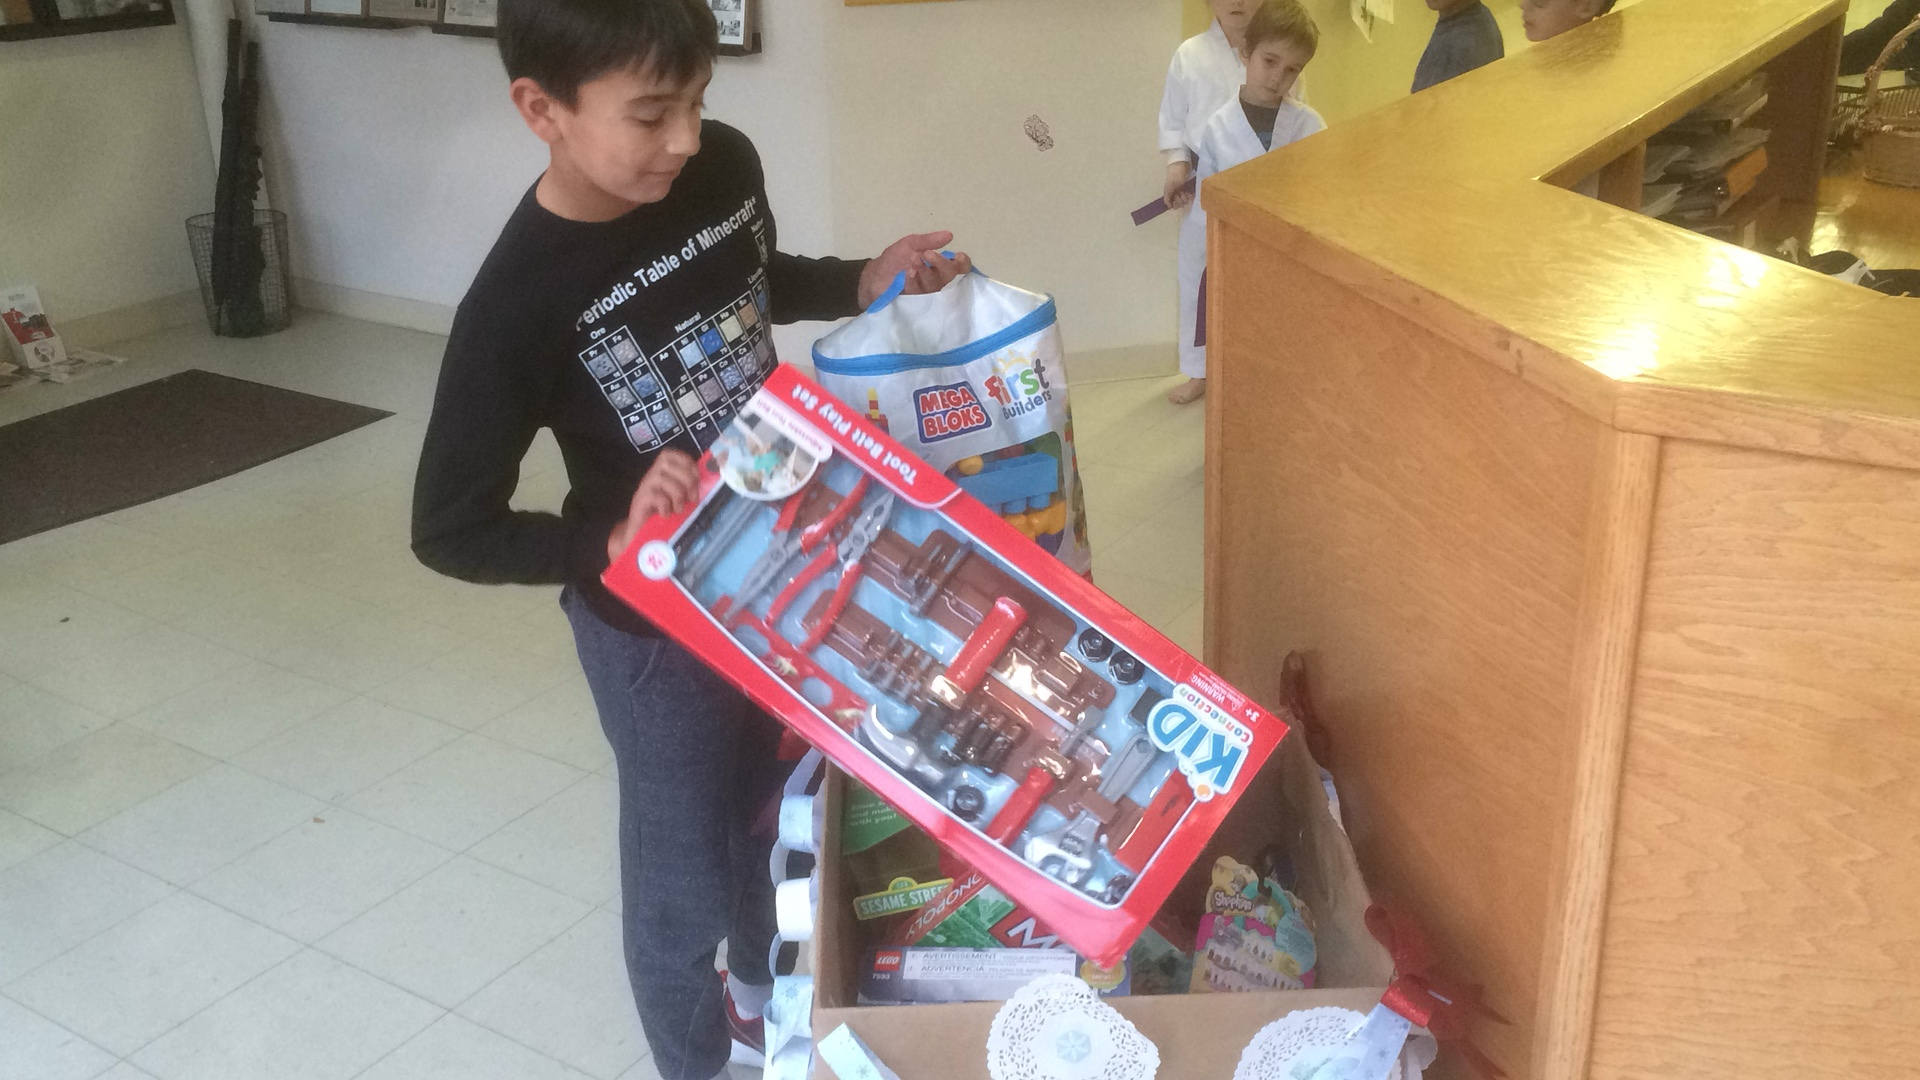 toys-for-tots-thedojo-toy-drive_23748295156_o.jpg